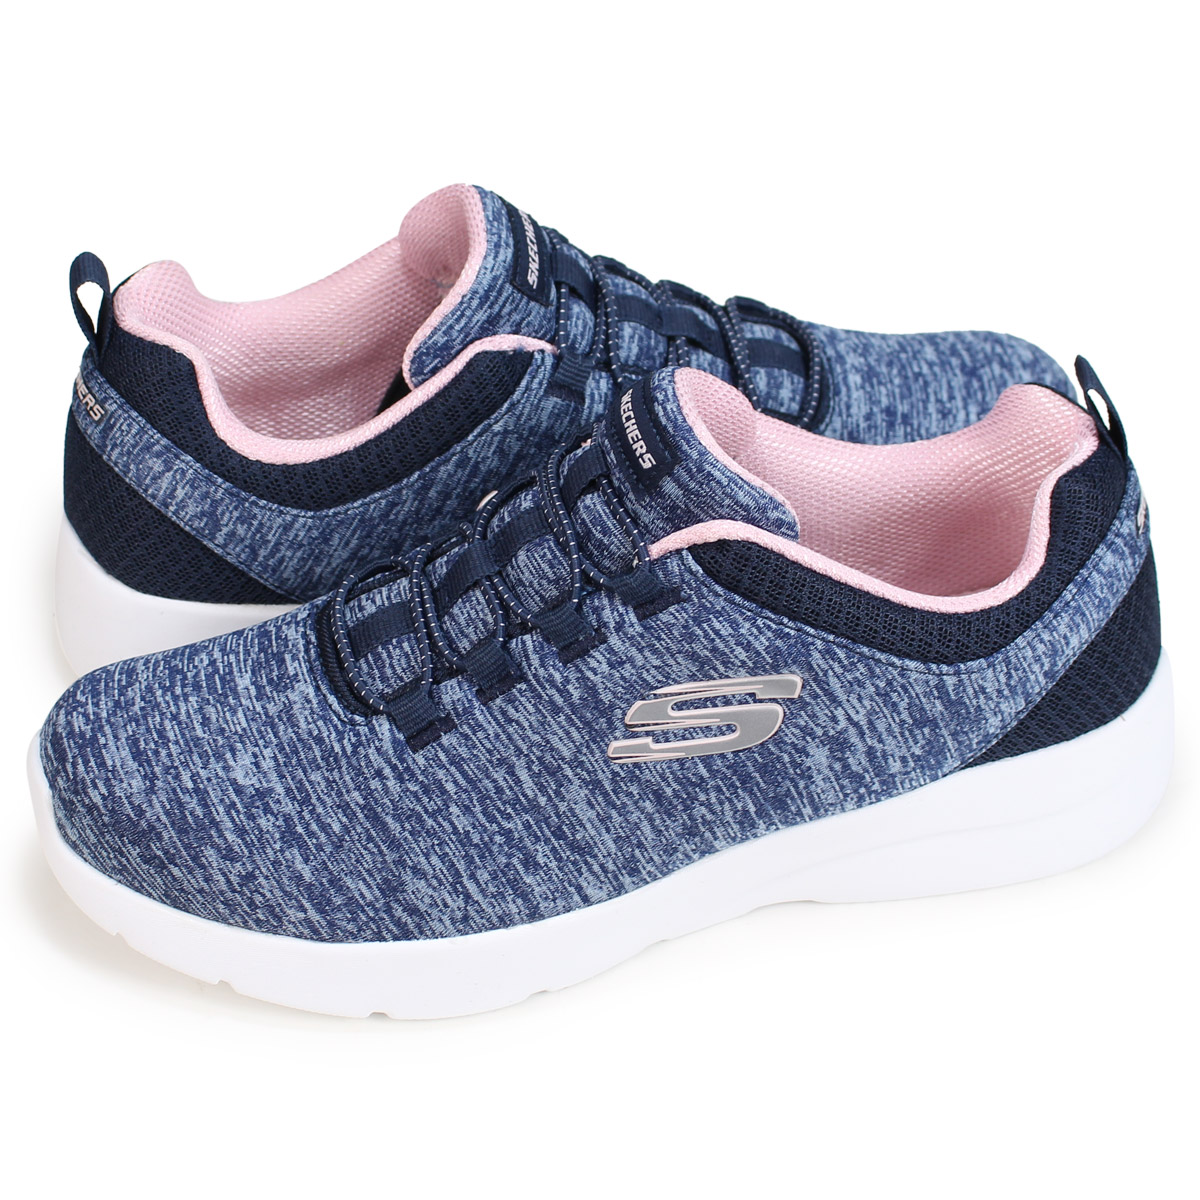 02bac939d987c [brand SKECHERS with drawing a new style to sketch it as a concept]. The  comfortable